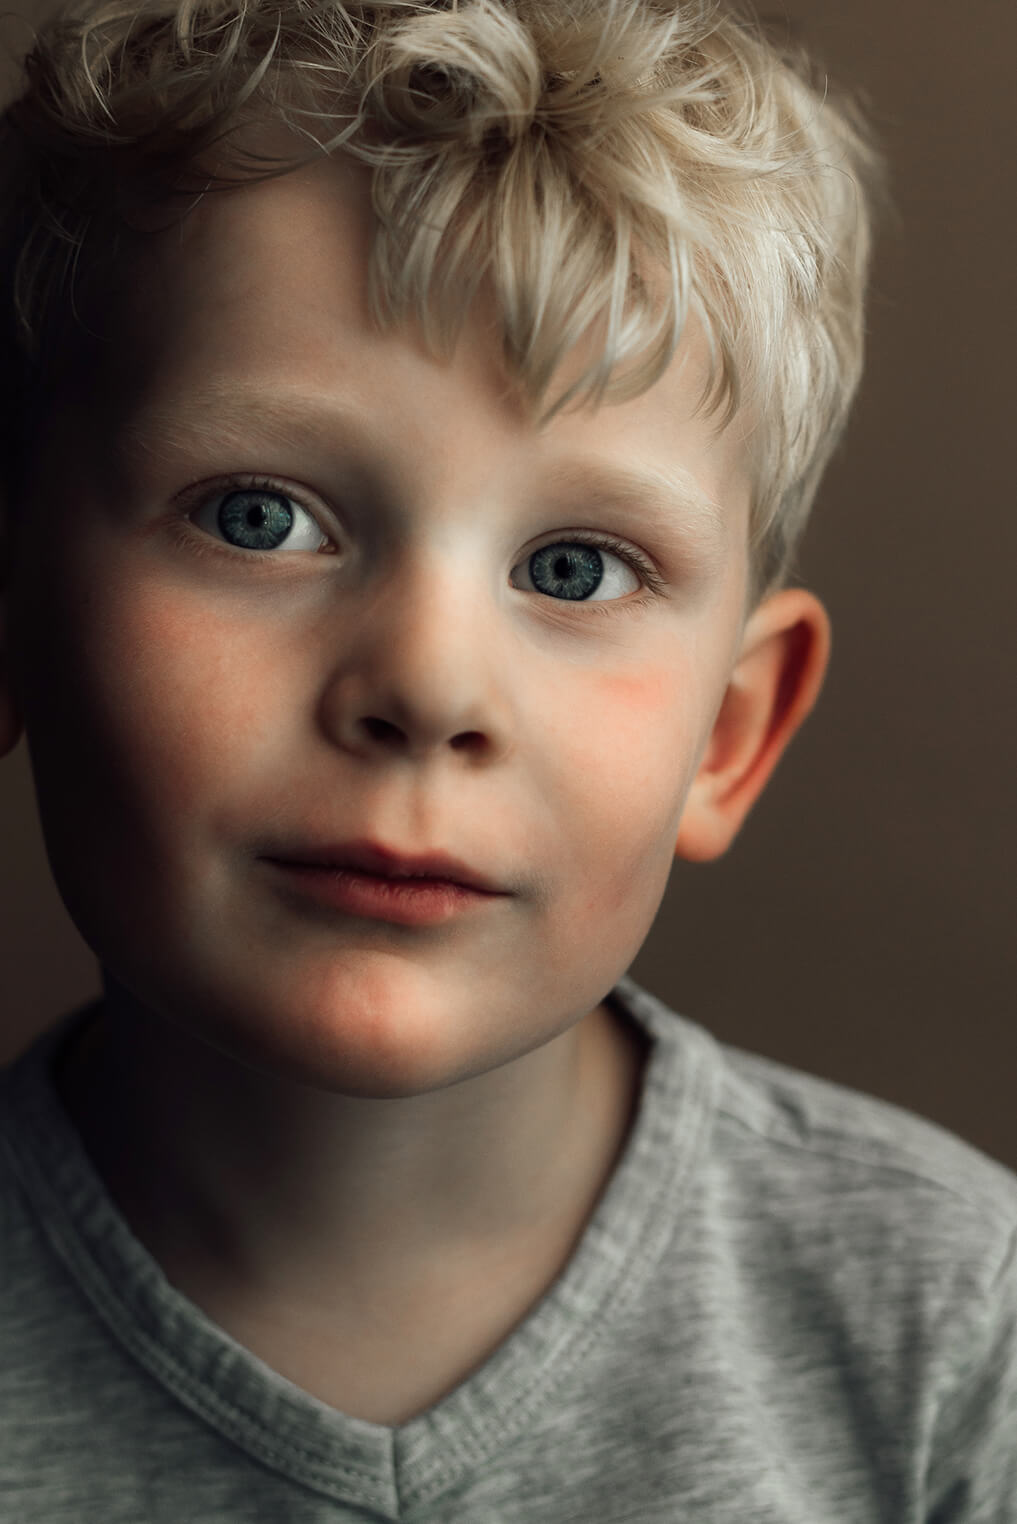 kinderportret close-up jongen